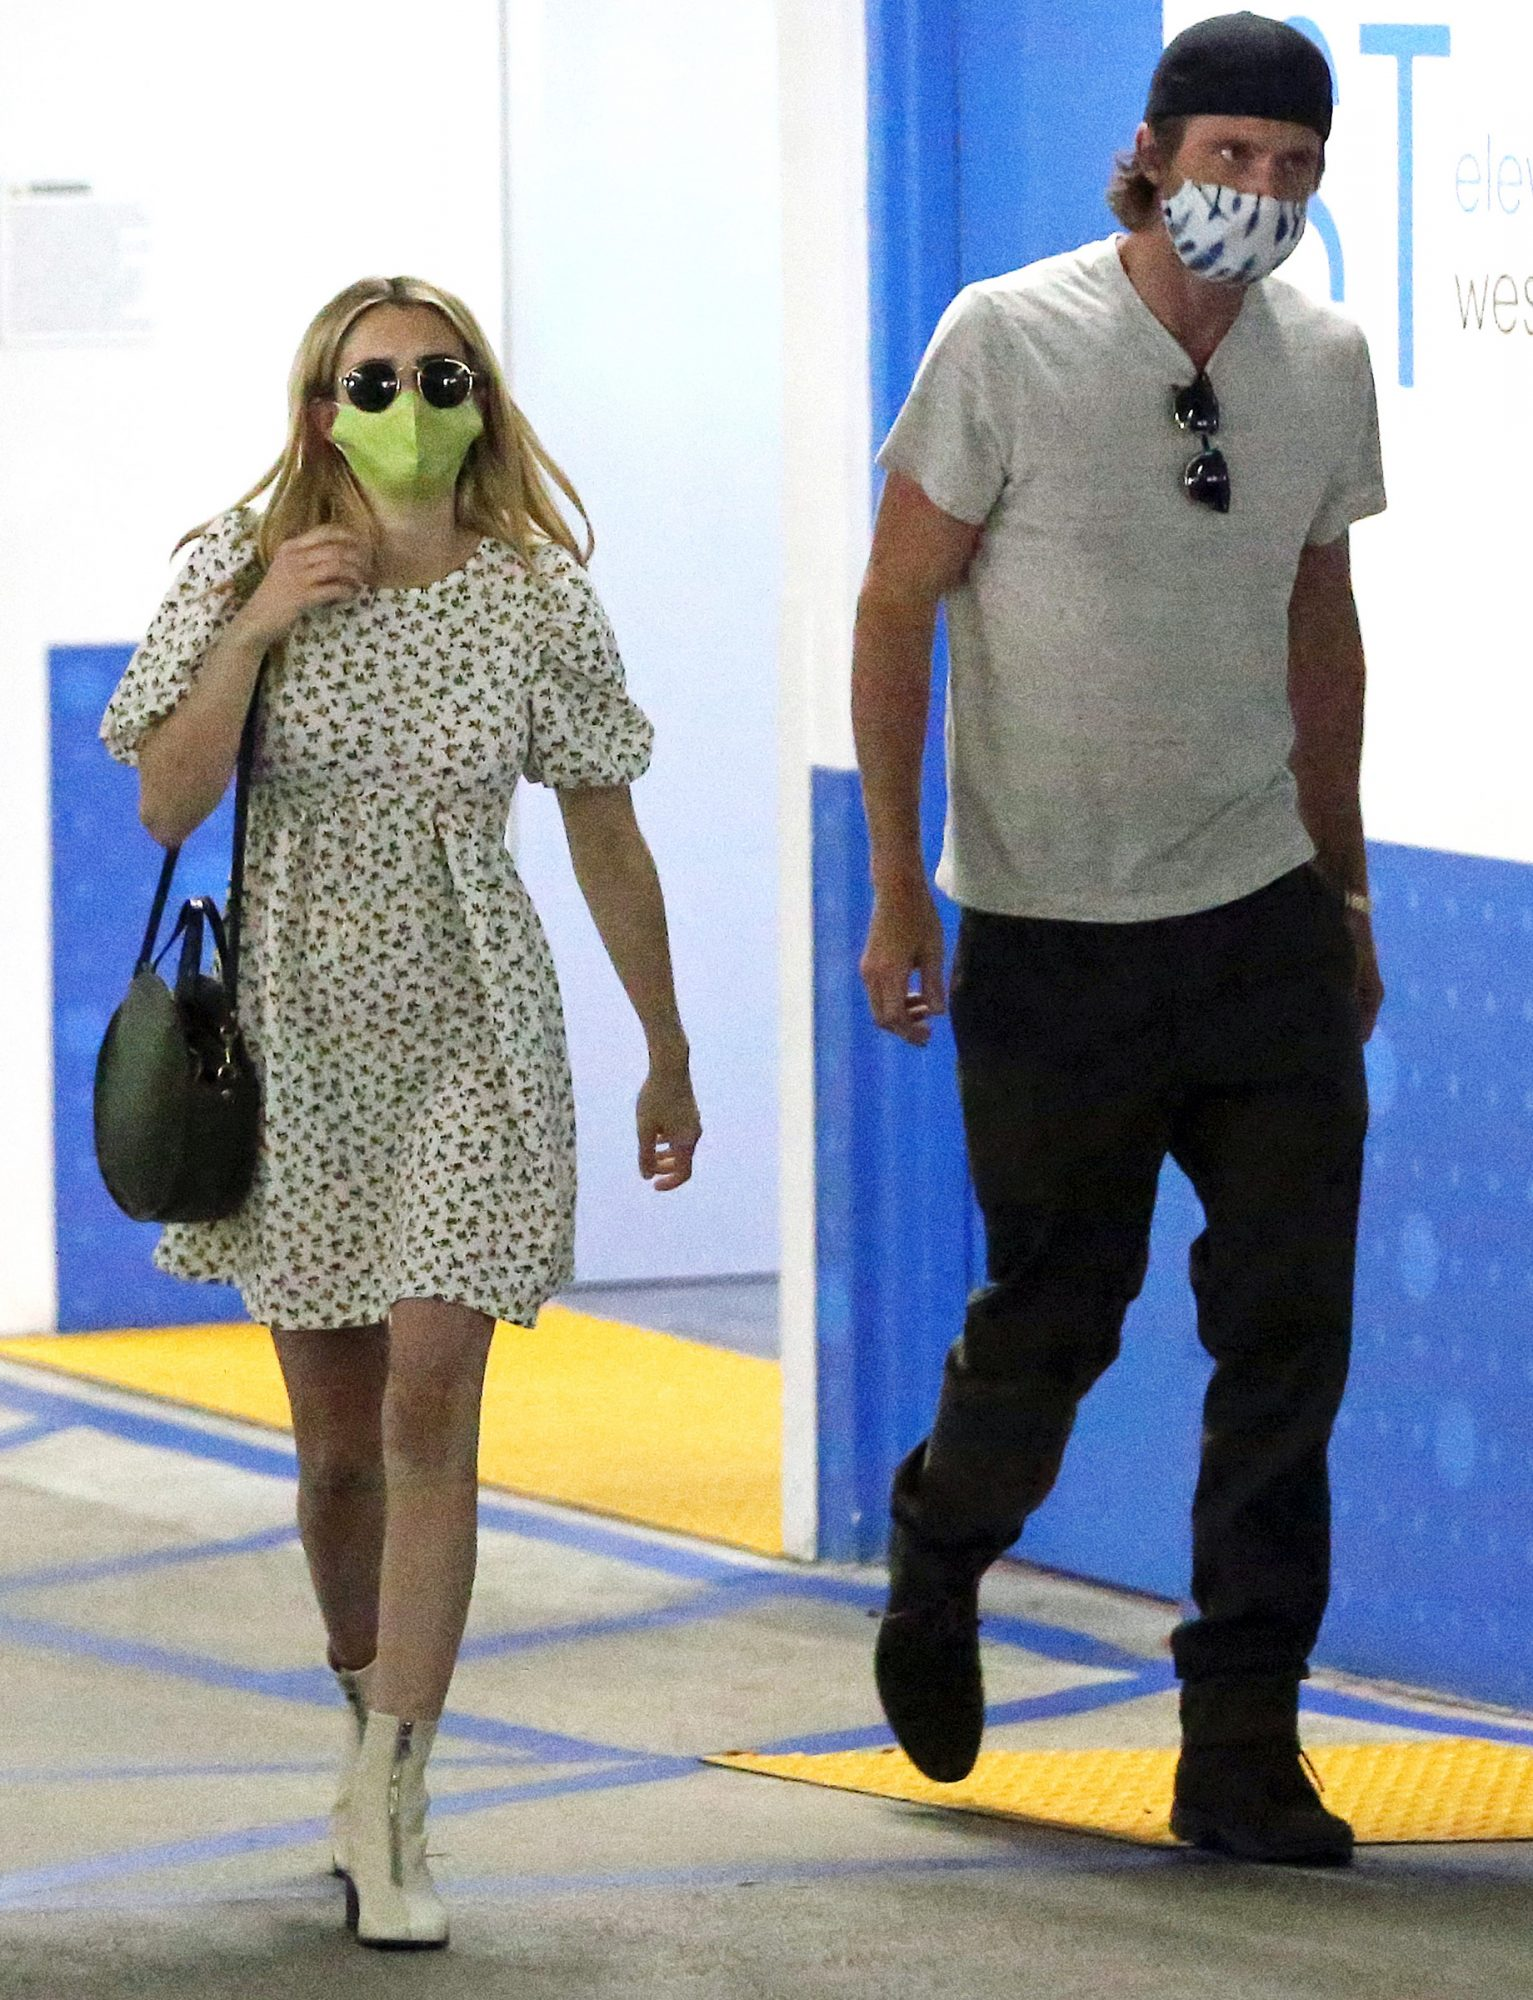 Emma Roberts and her boyfriend Garrett Hedlund go for a check up